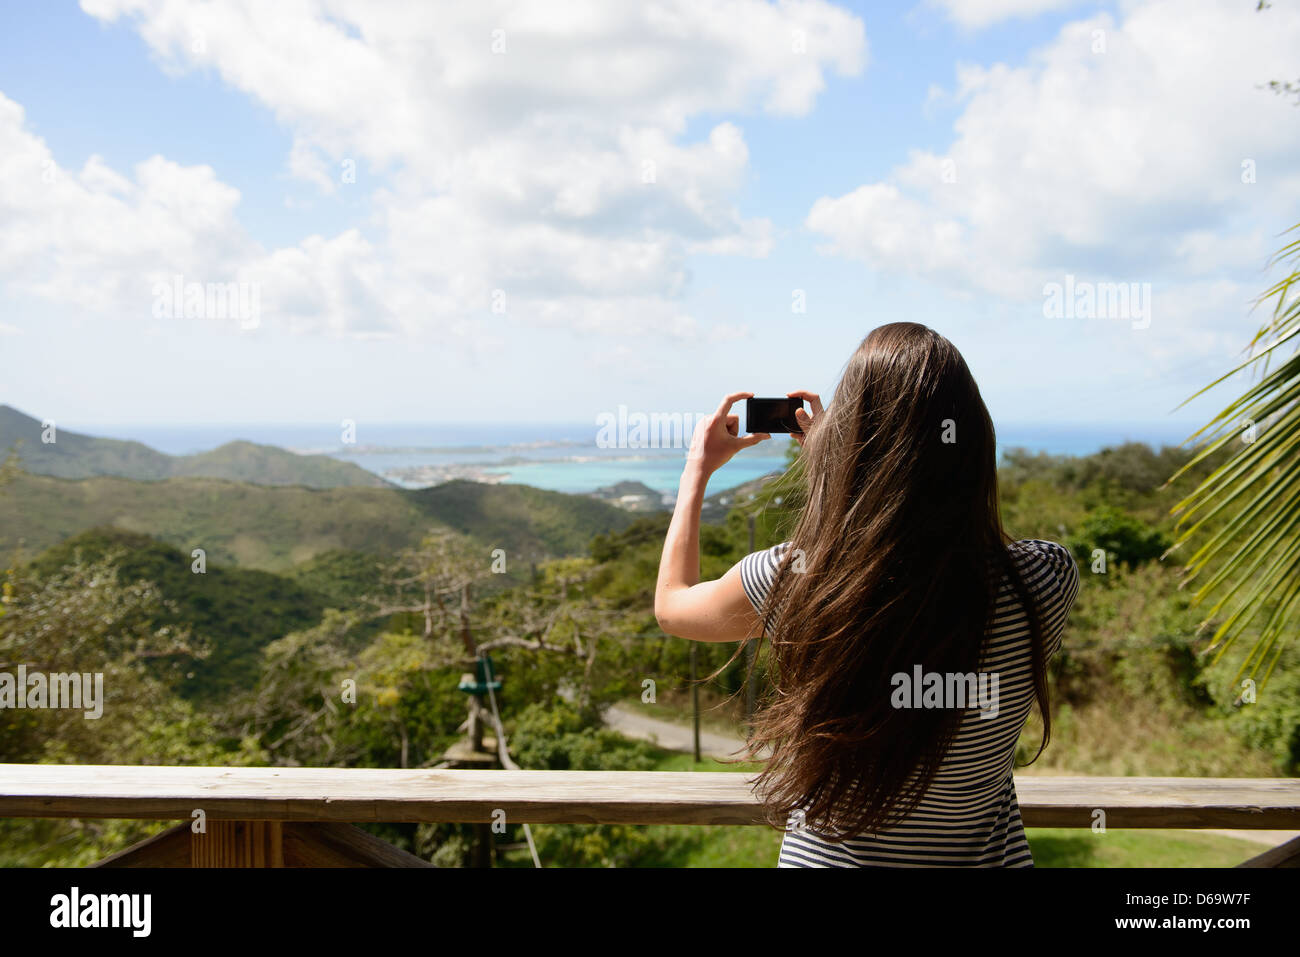 Woman taking picture of coast landscape - Stock Image